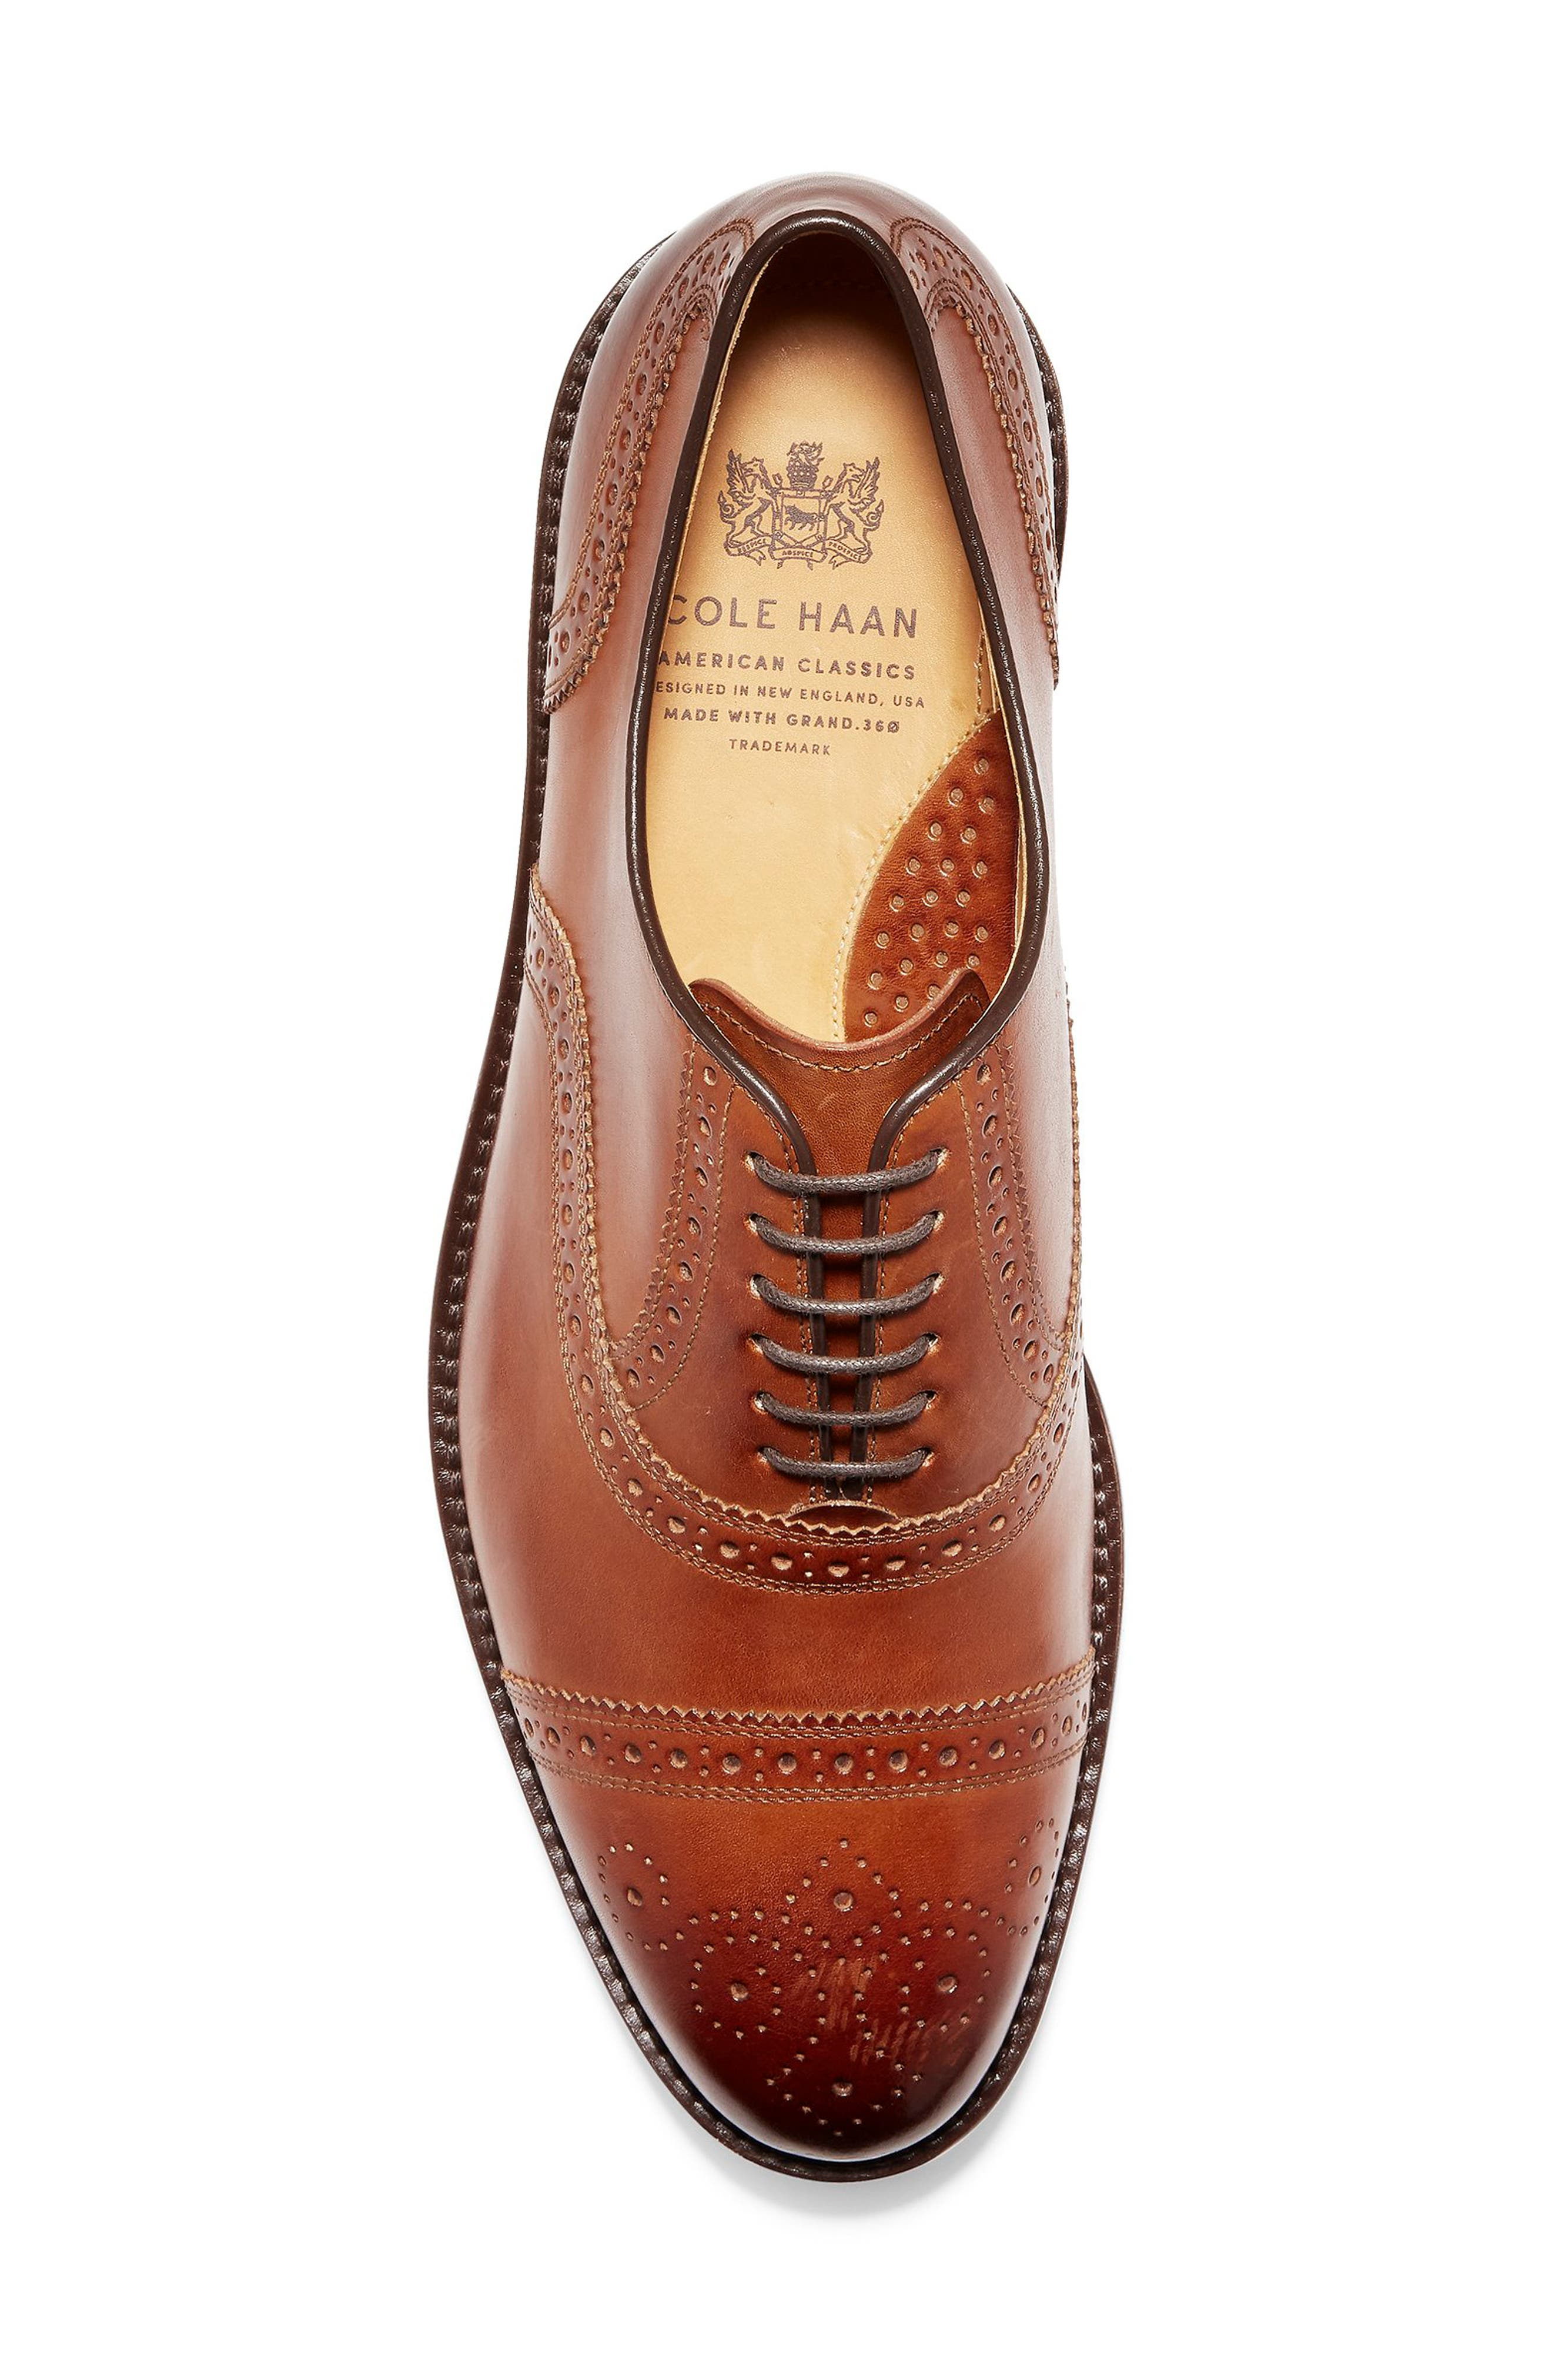 COLE HAAN, American Classics Kneeland Cap Toe Oxford, Alternate thumbnail 5, color, BRITISH TAN LEATHER